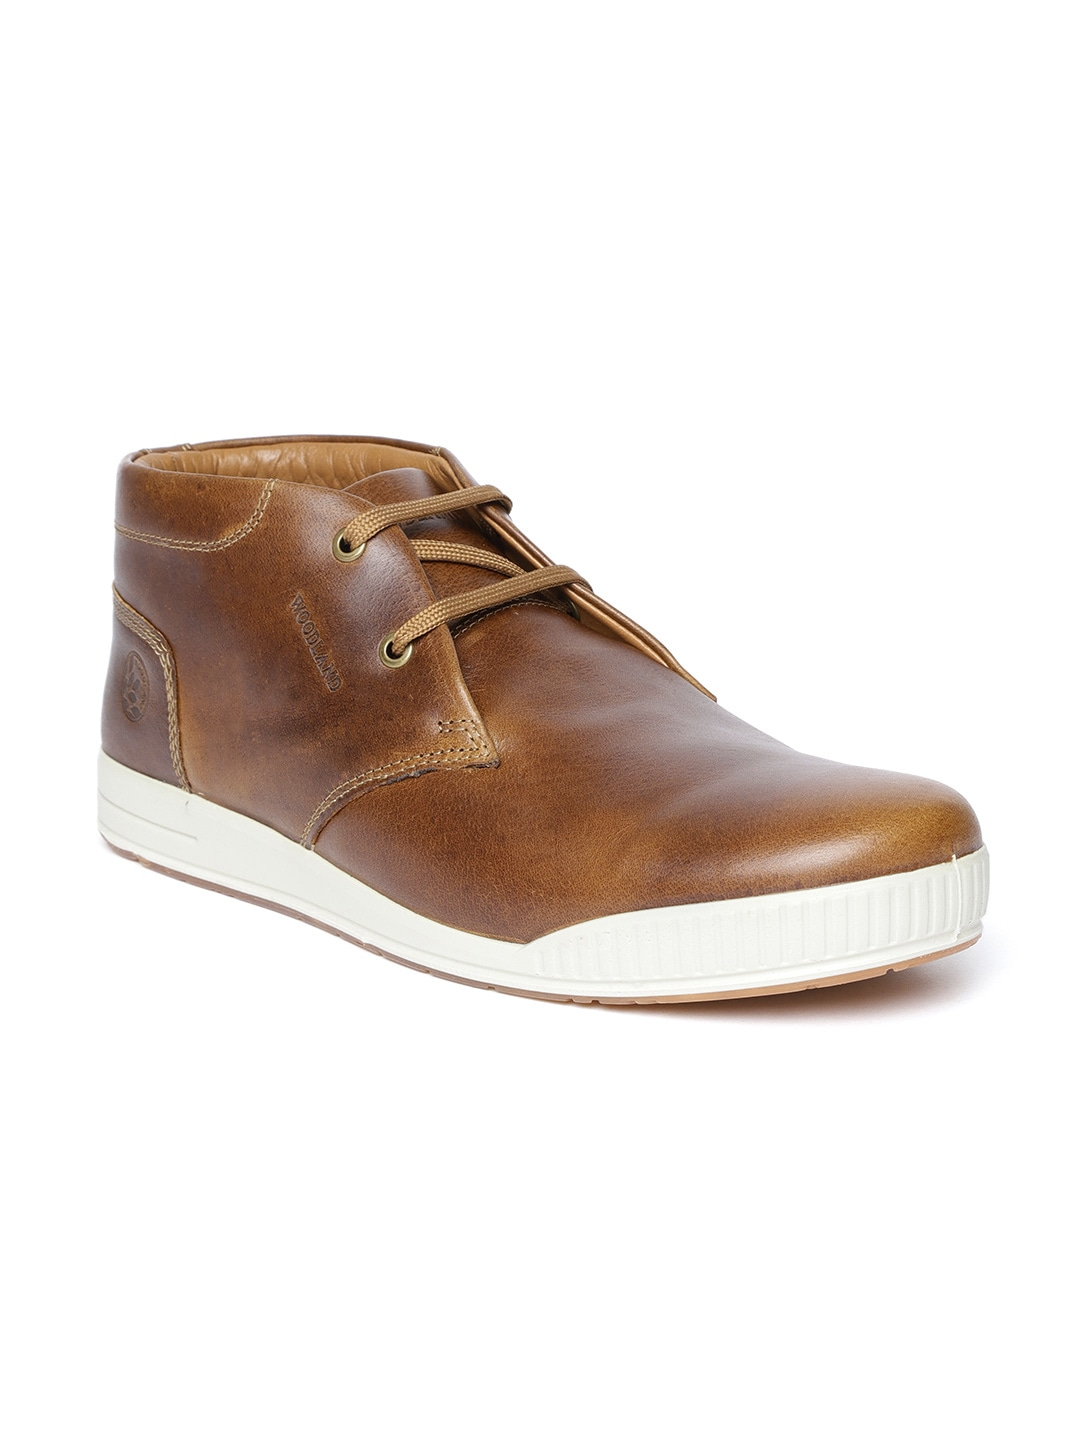 Woodland Shoes Price - Men Shoes Best Price in India ...